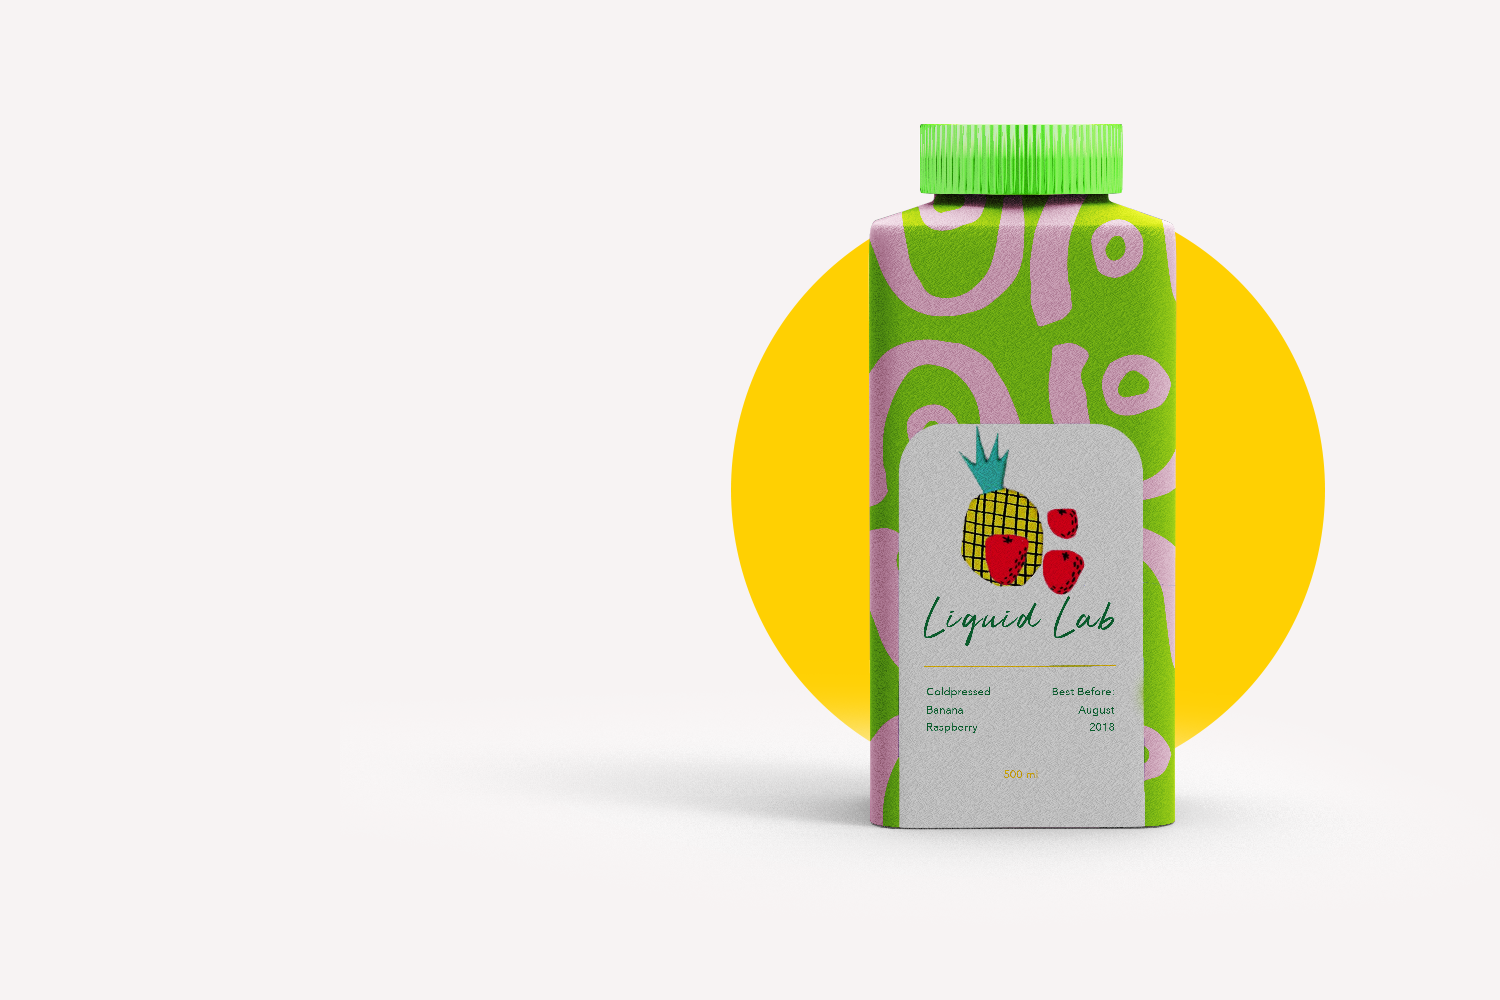 Liquid Lab juice; branding and web design - drink green and pink - Eva B.